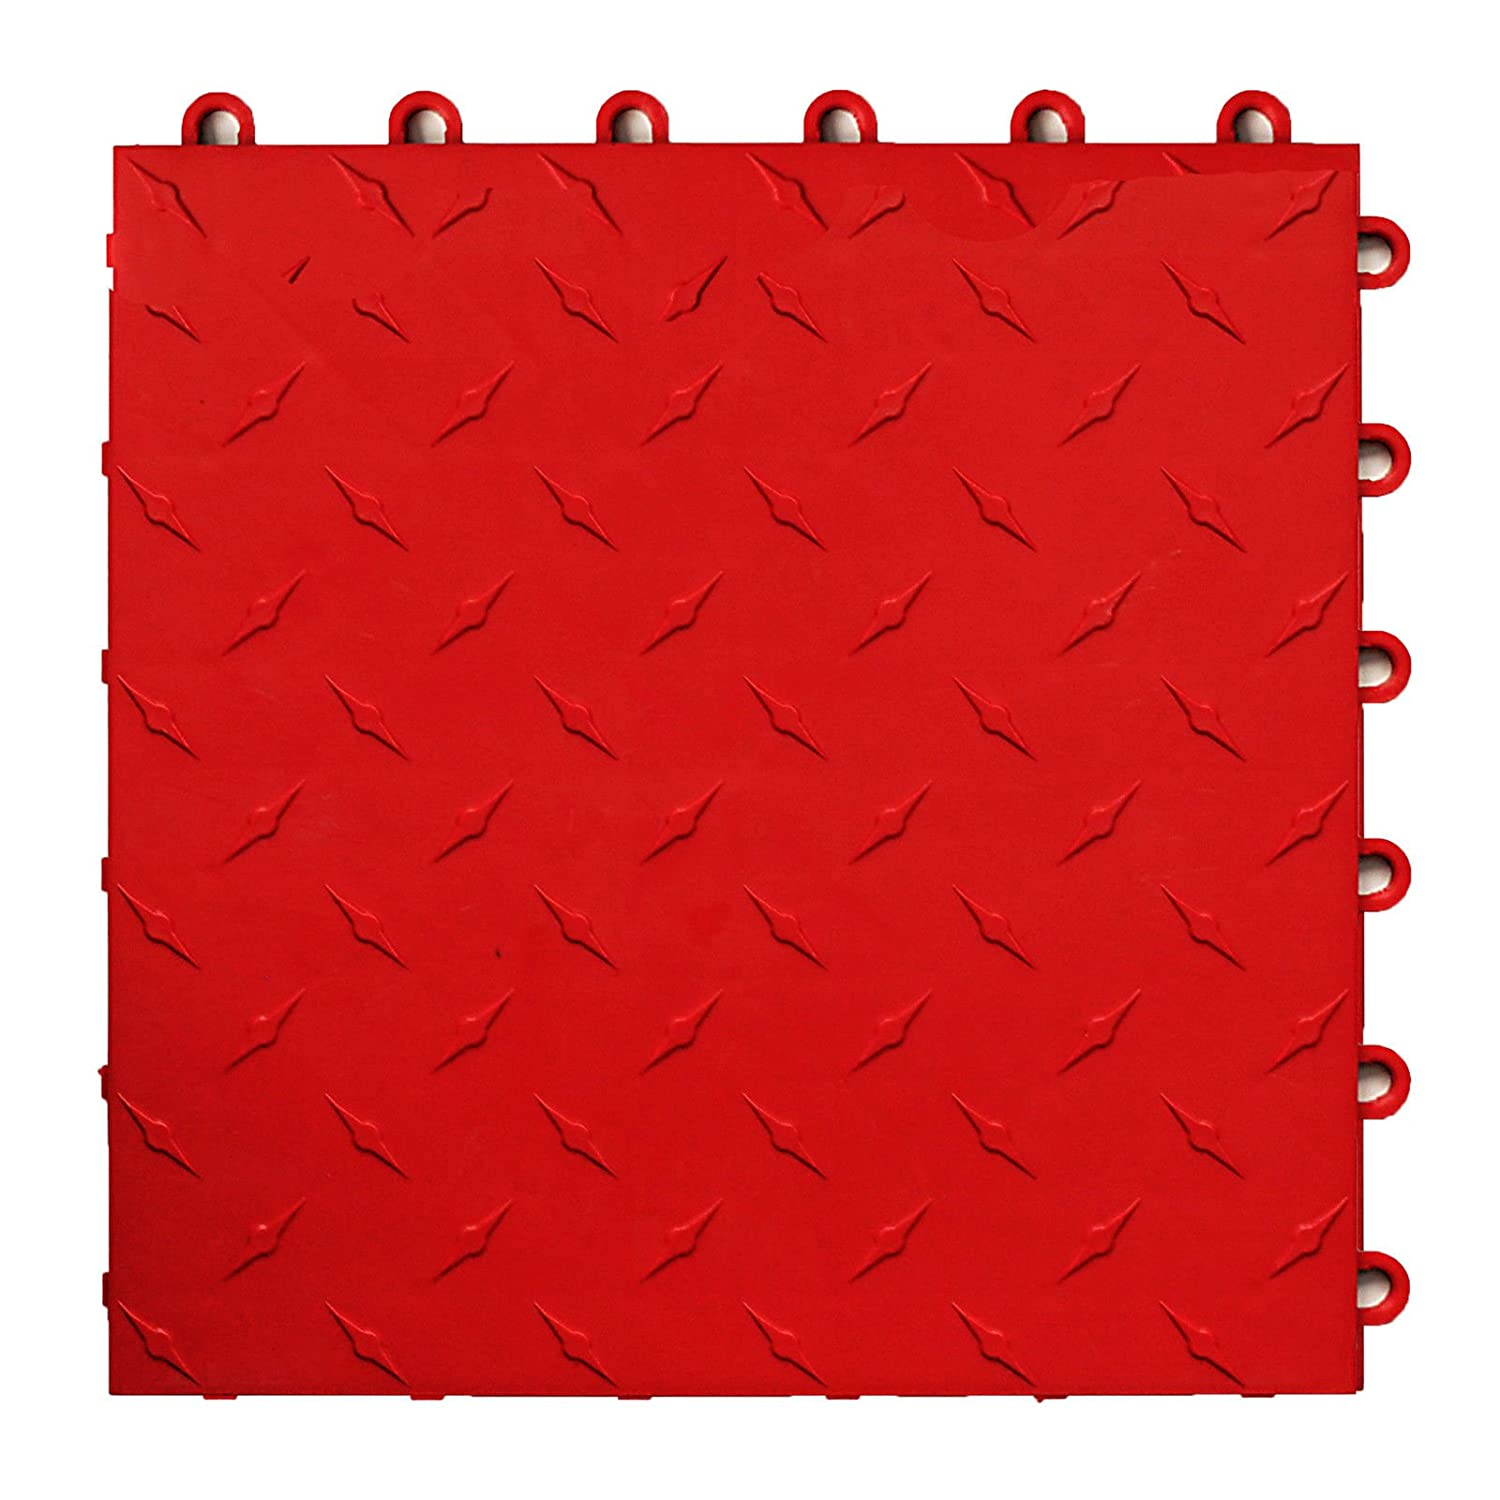 Speedway Garage Tile Interlocking Garage Flooring 6 LOCK Diamond Tile Red 25 pack Speedway Garage Tile Mfg 789453R25 ceramic-floor-tiles